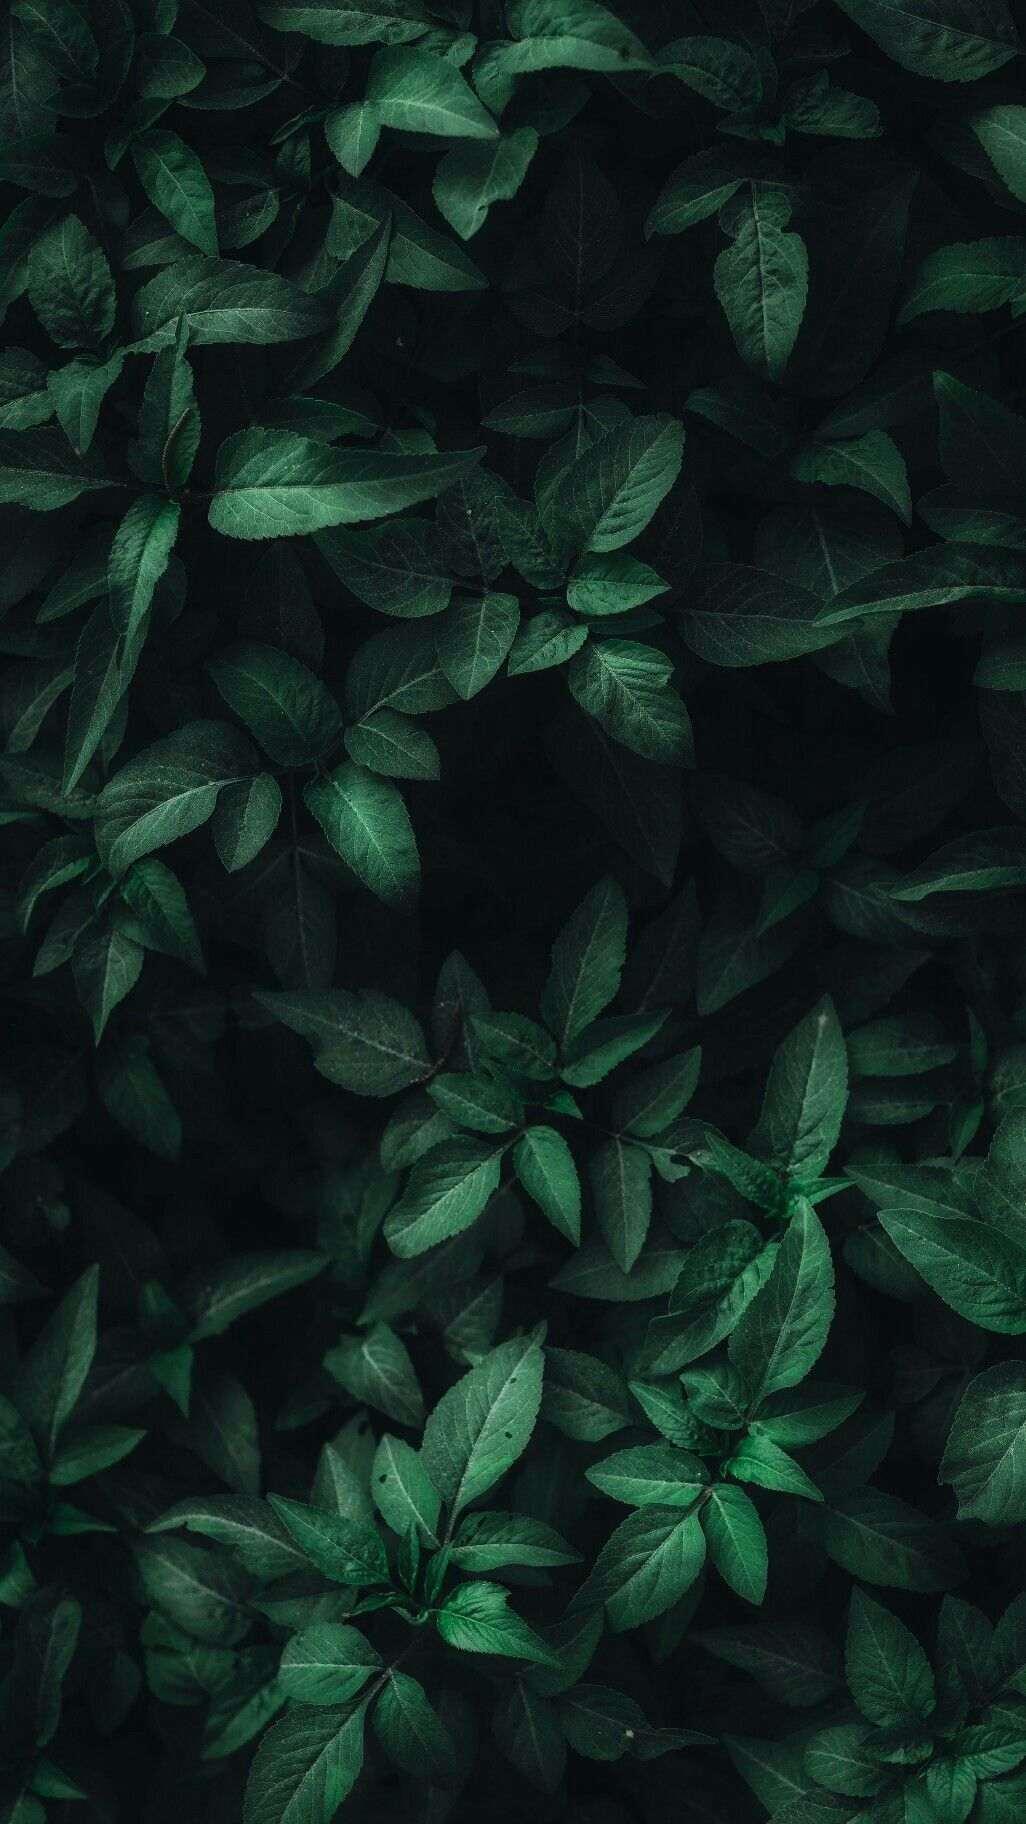 Dark Green Leaves Wallpapers Top Free Dark Green Leaves Backgrounds Wallpaperaccess